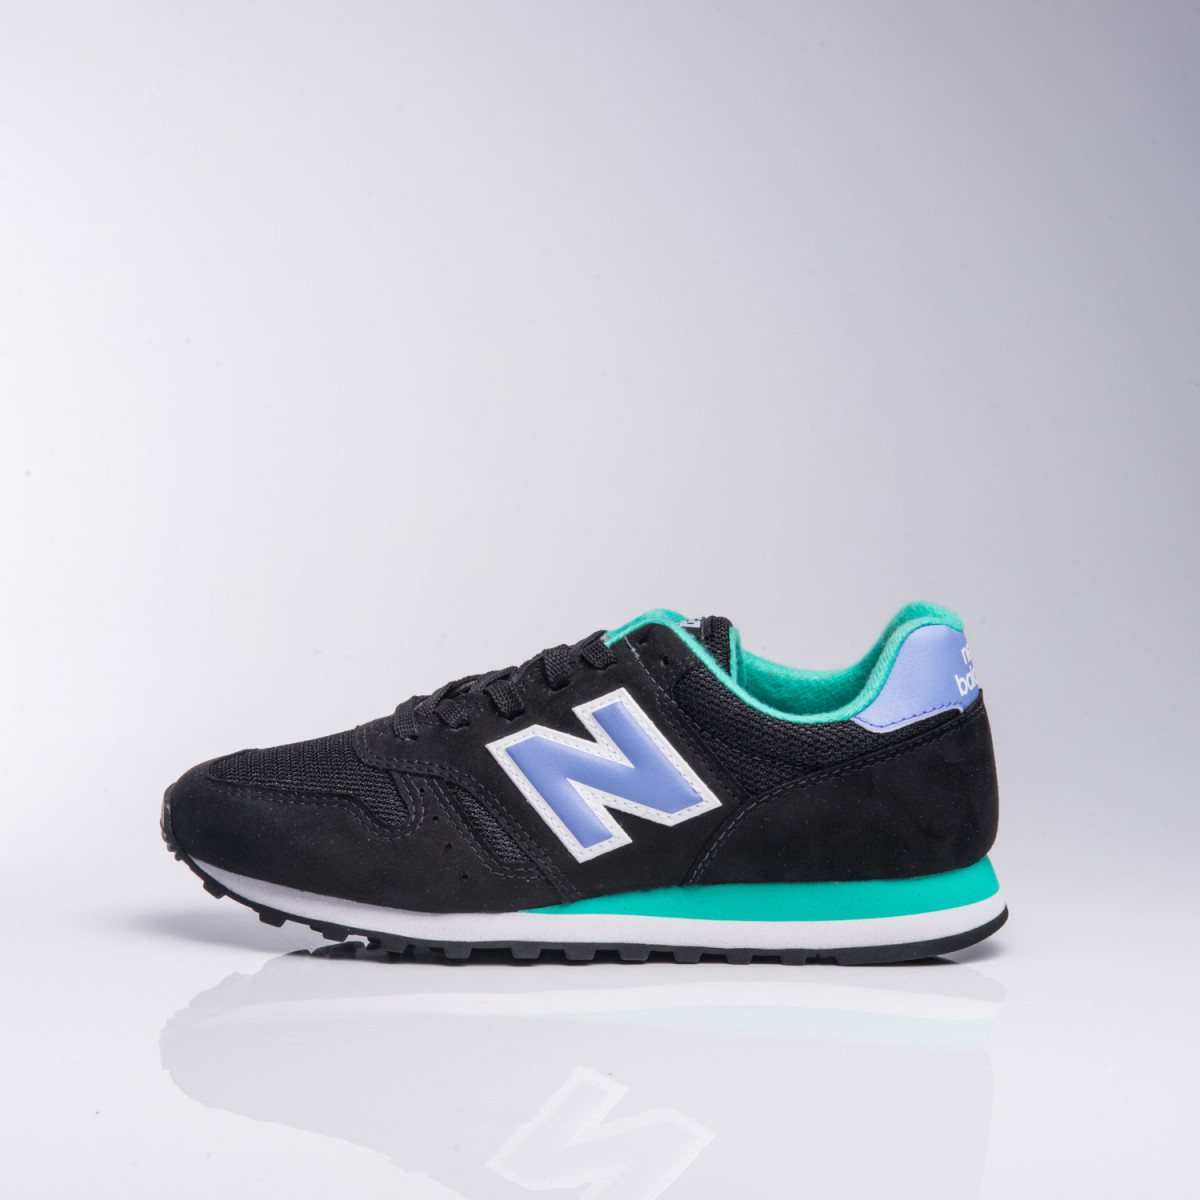 ZAPATILLAS NEW BALANCE WL373BPGB